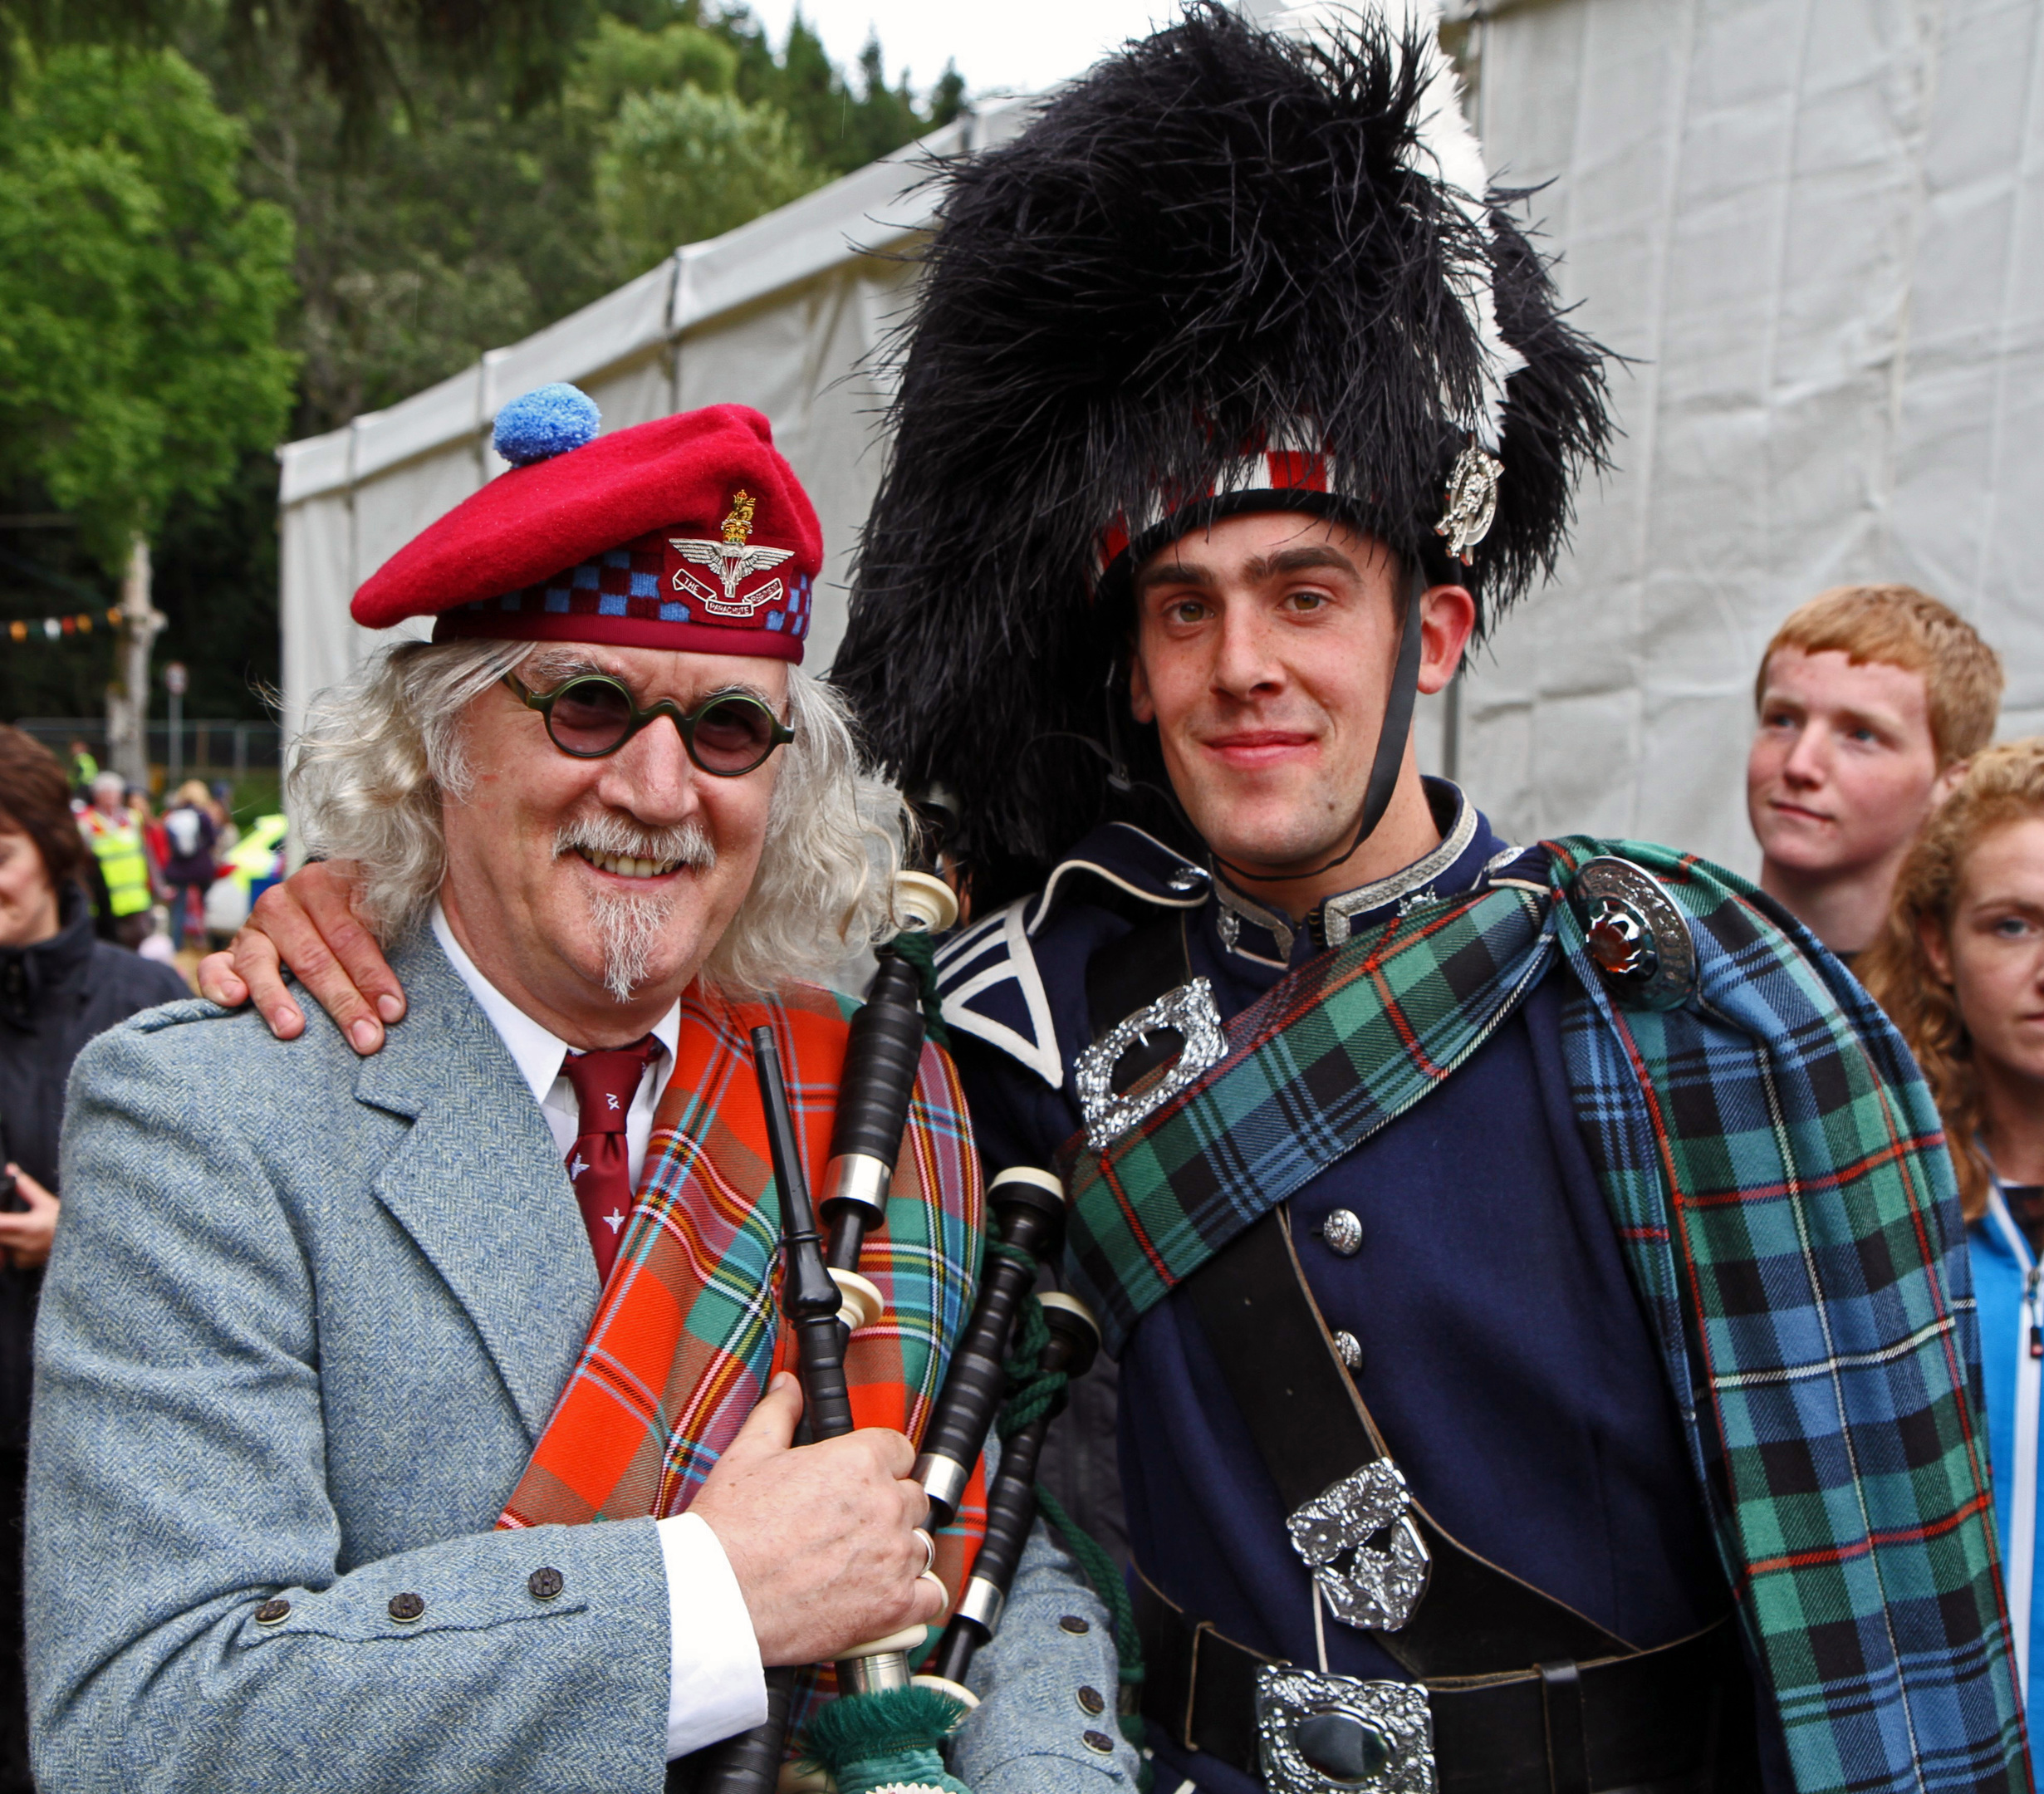 Dougie Kay, who pipes for the Ballater Pipe Band and the Buchan Peterson Grade Two Champion Pipe Band, was in Kathmandu when the earthquake hit.